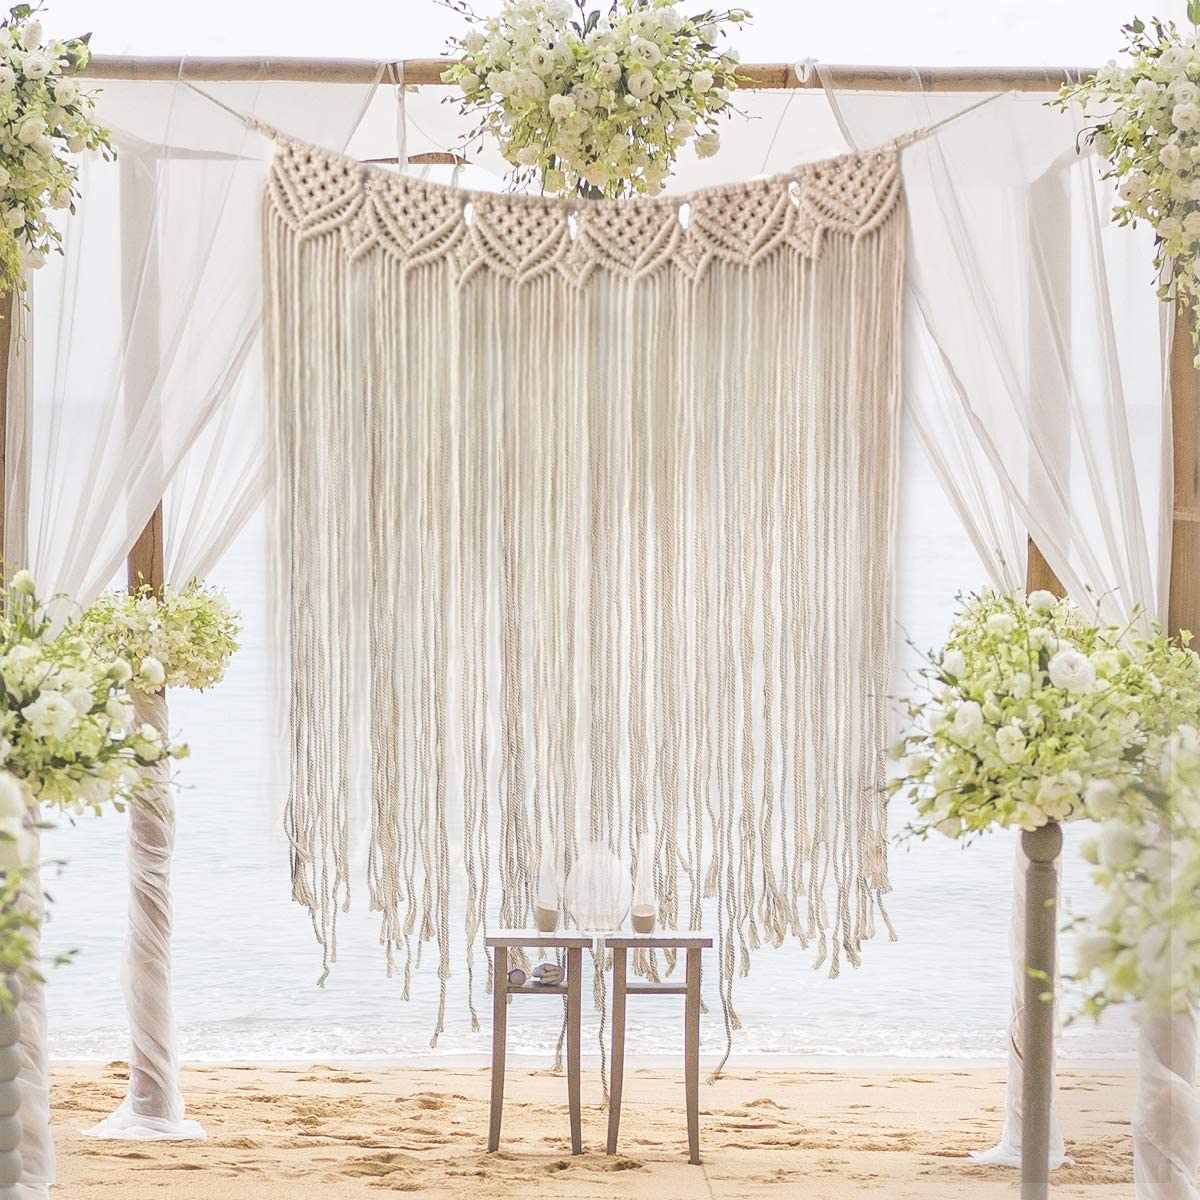 "Gute Macrame Wall Hanging, Large Woven Wall Hangings, Boho Cotton Handmade Macrame Backdrop Wall Decor for Wedding Living Room Bedroom Gallery, 39""x 33"""